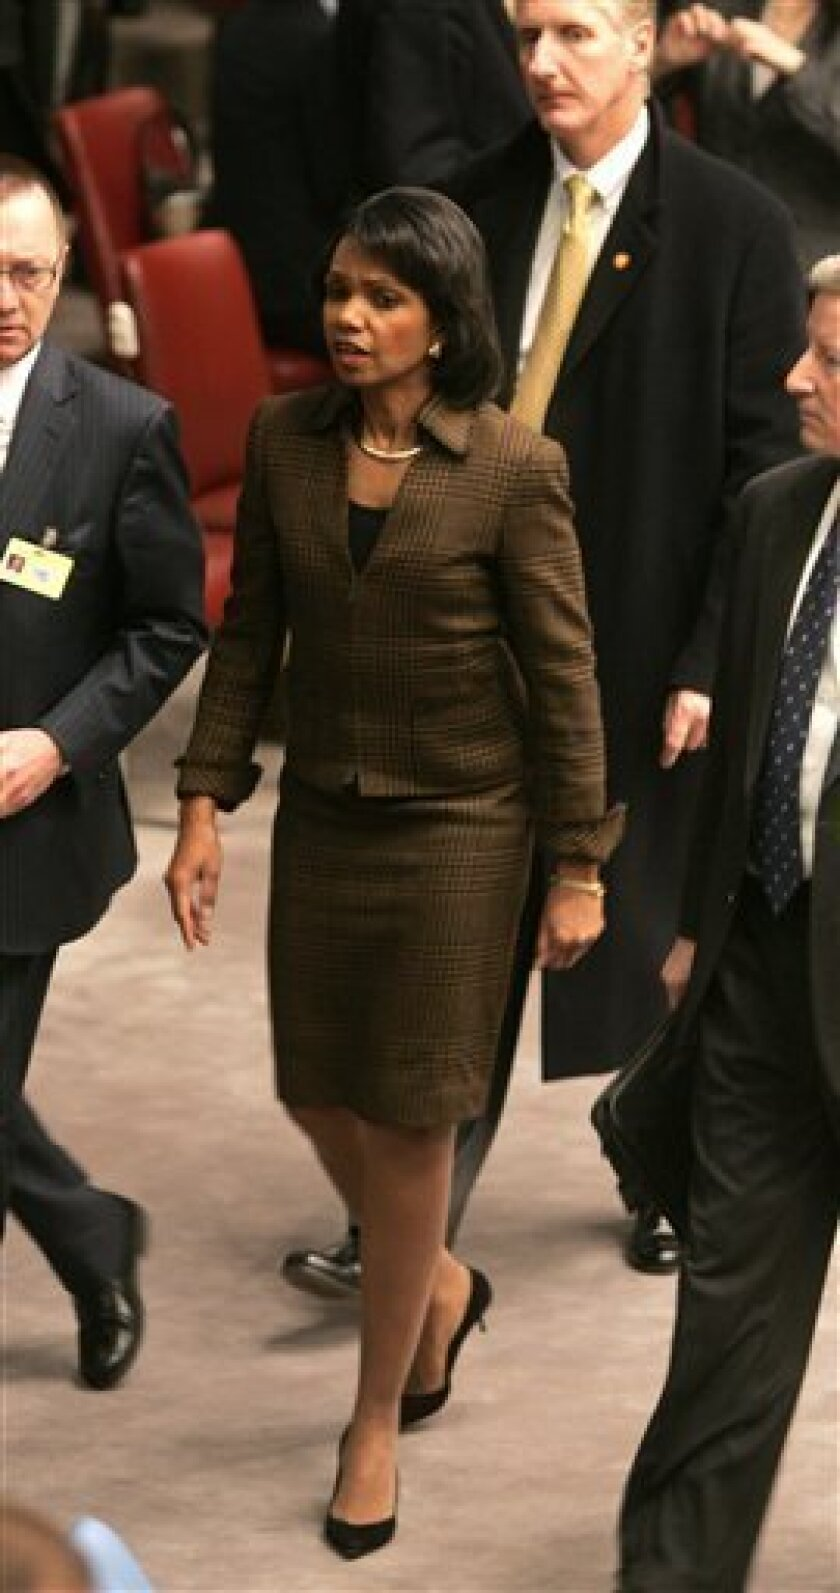 U.S. Secretary of State Condoleezza Rice walks through the Security Council before a meeting at the United Nations headquarters Wednesday, Jan. 7, 2009. Rice extended a visit to New York to participate in talks at the United Nations on an Egyptian-French proposal for a truce to end fighting in the